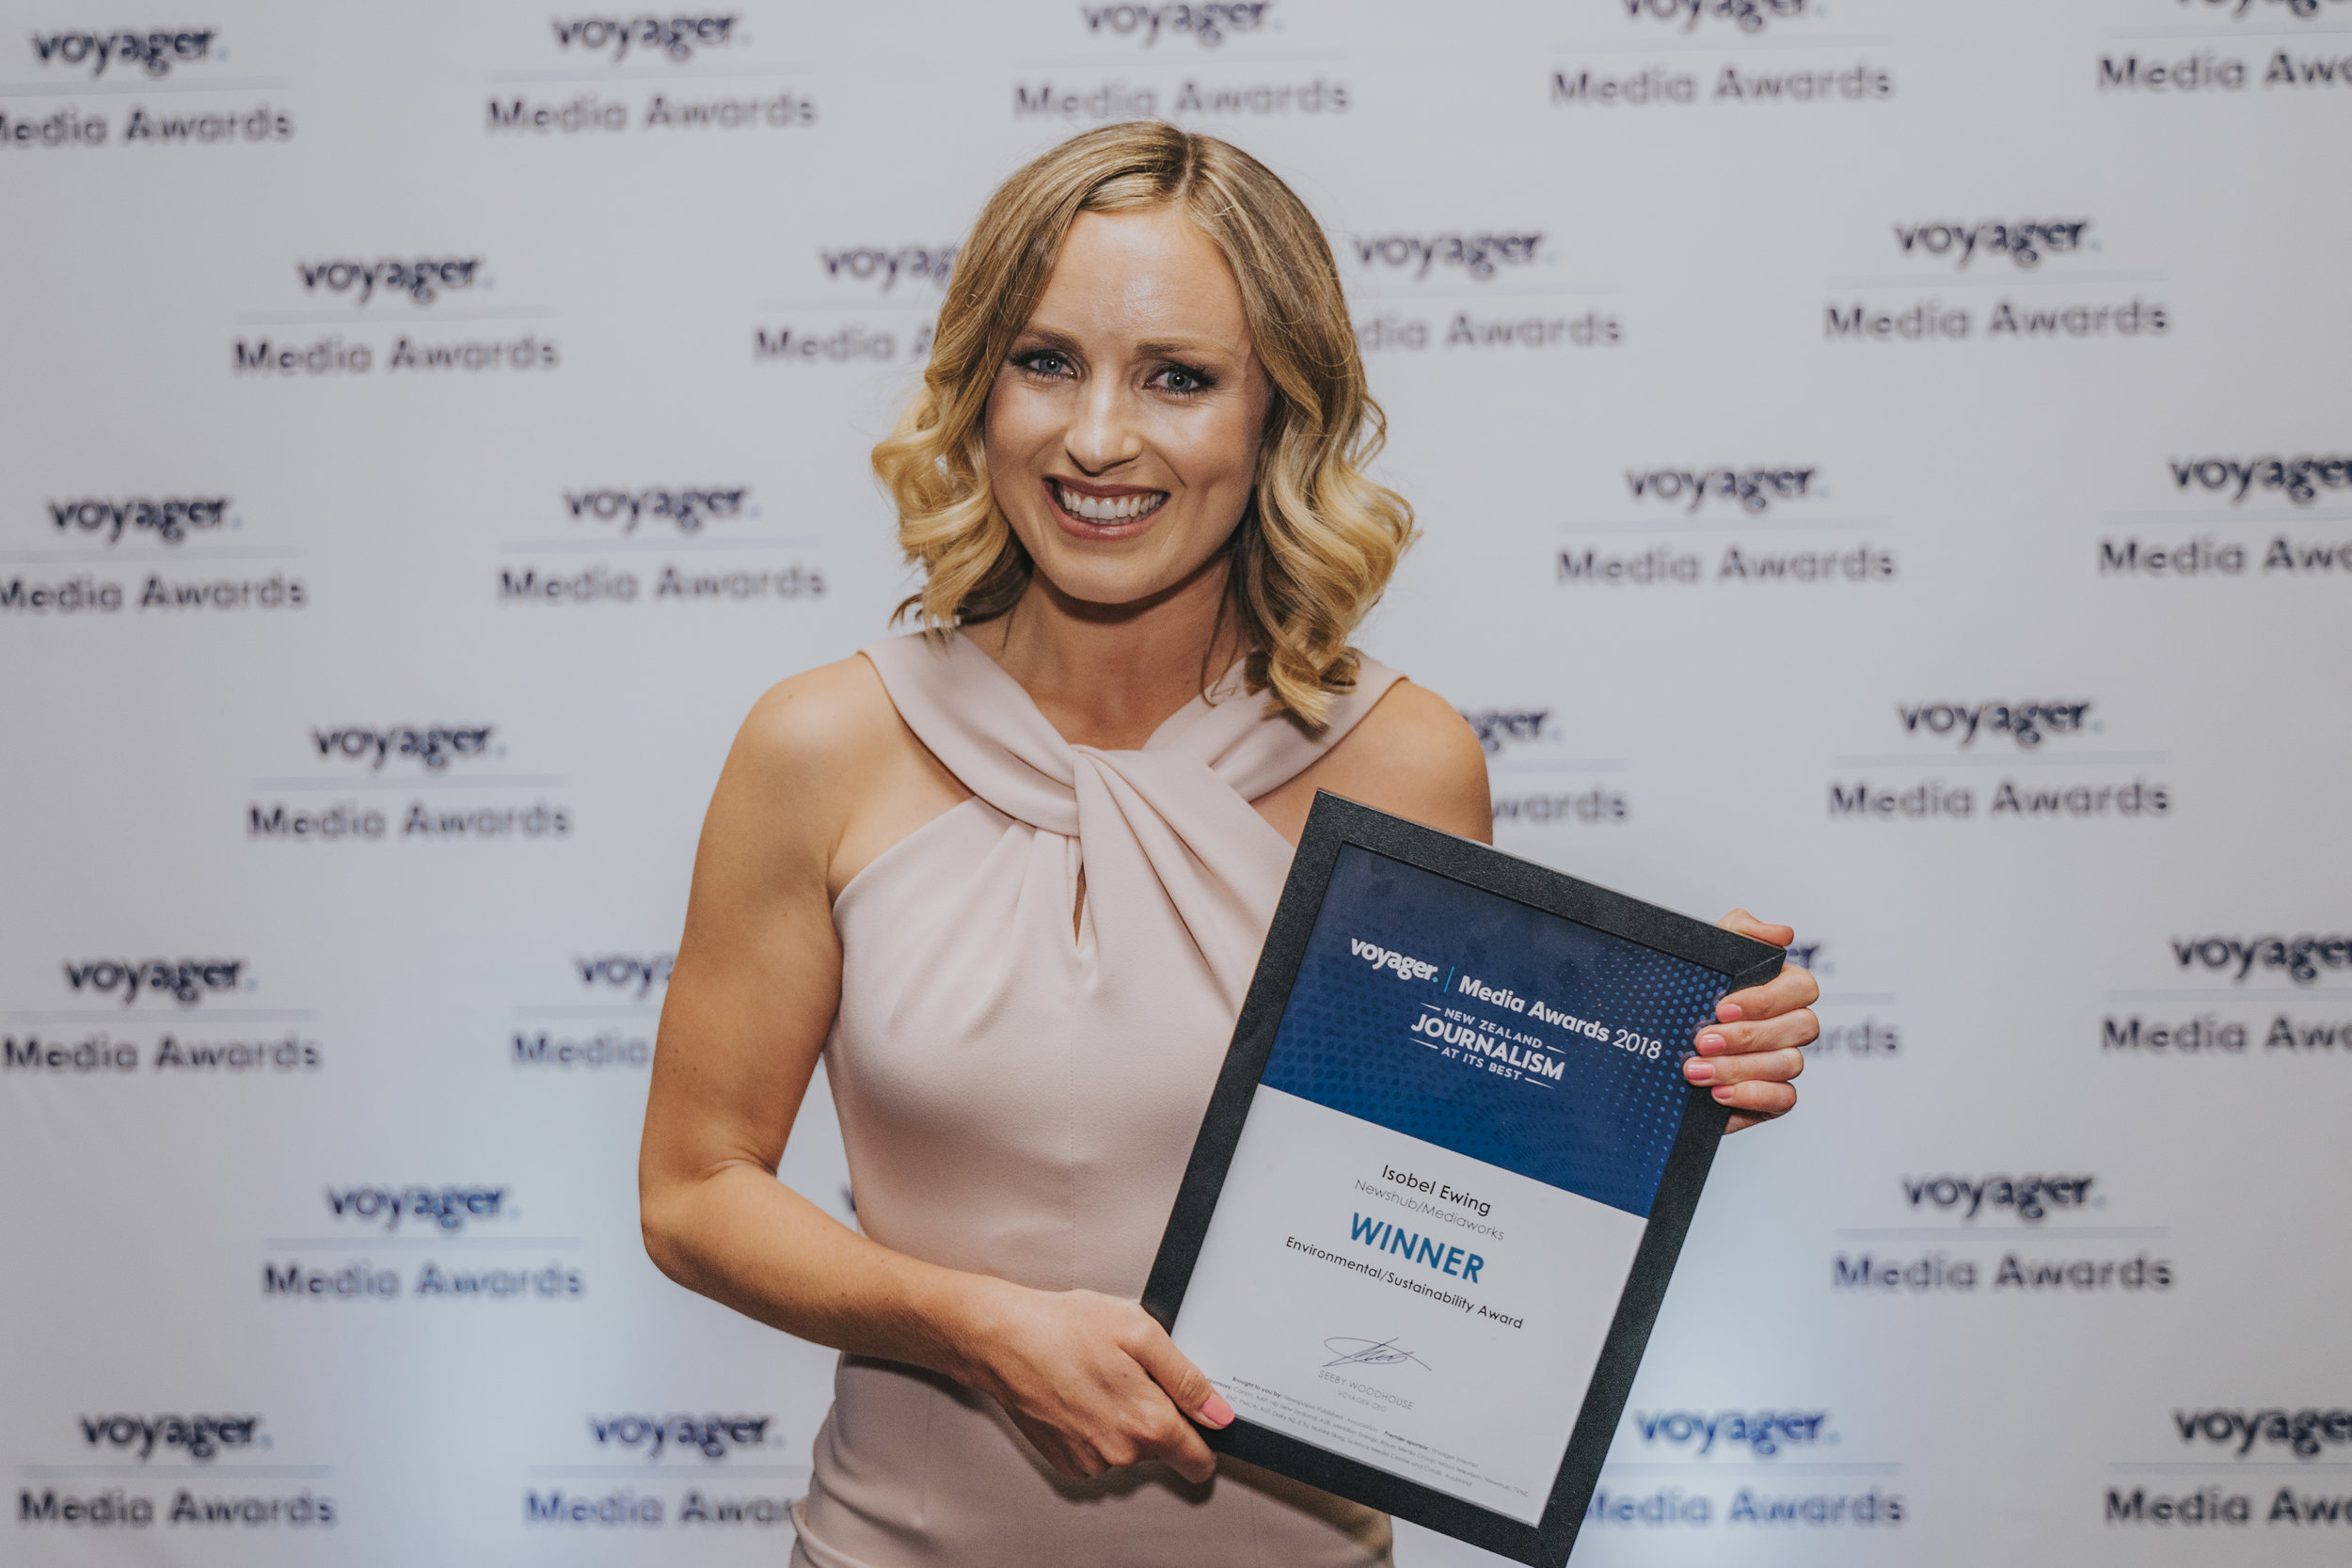 Voyager Media Awards 2018-281.JPG